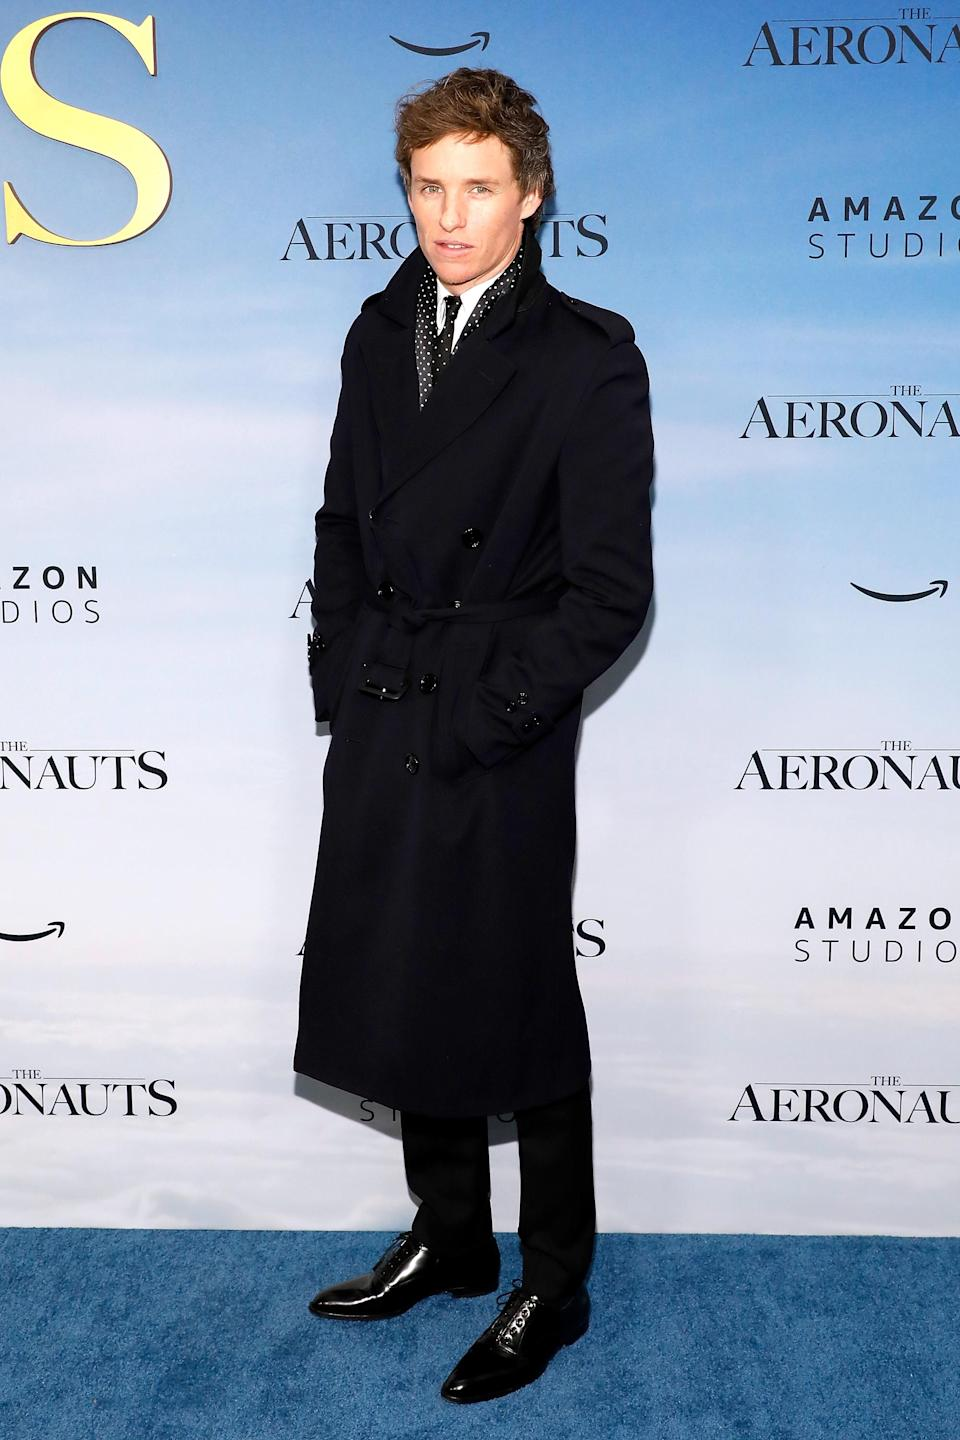 """Eddie Redmayne attends the premiere of """"The Aeronauts"""" at SVA Theater on December 04, 2019 in New York City. (Photo by Taylor Hill/WireImage)"""